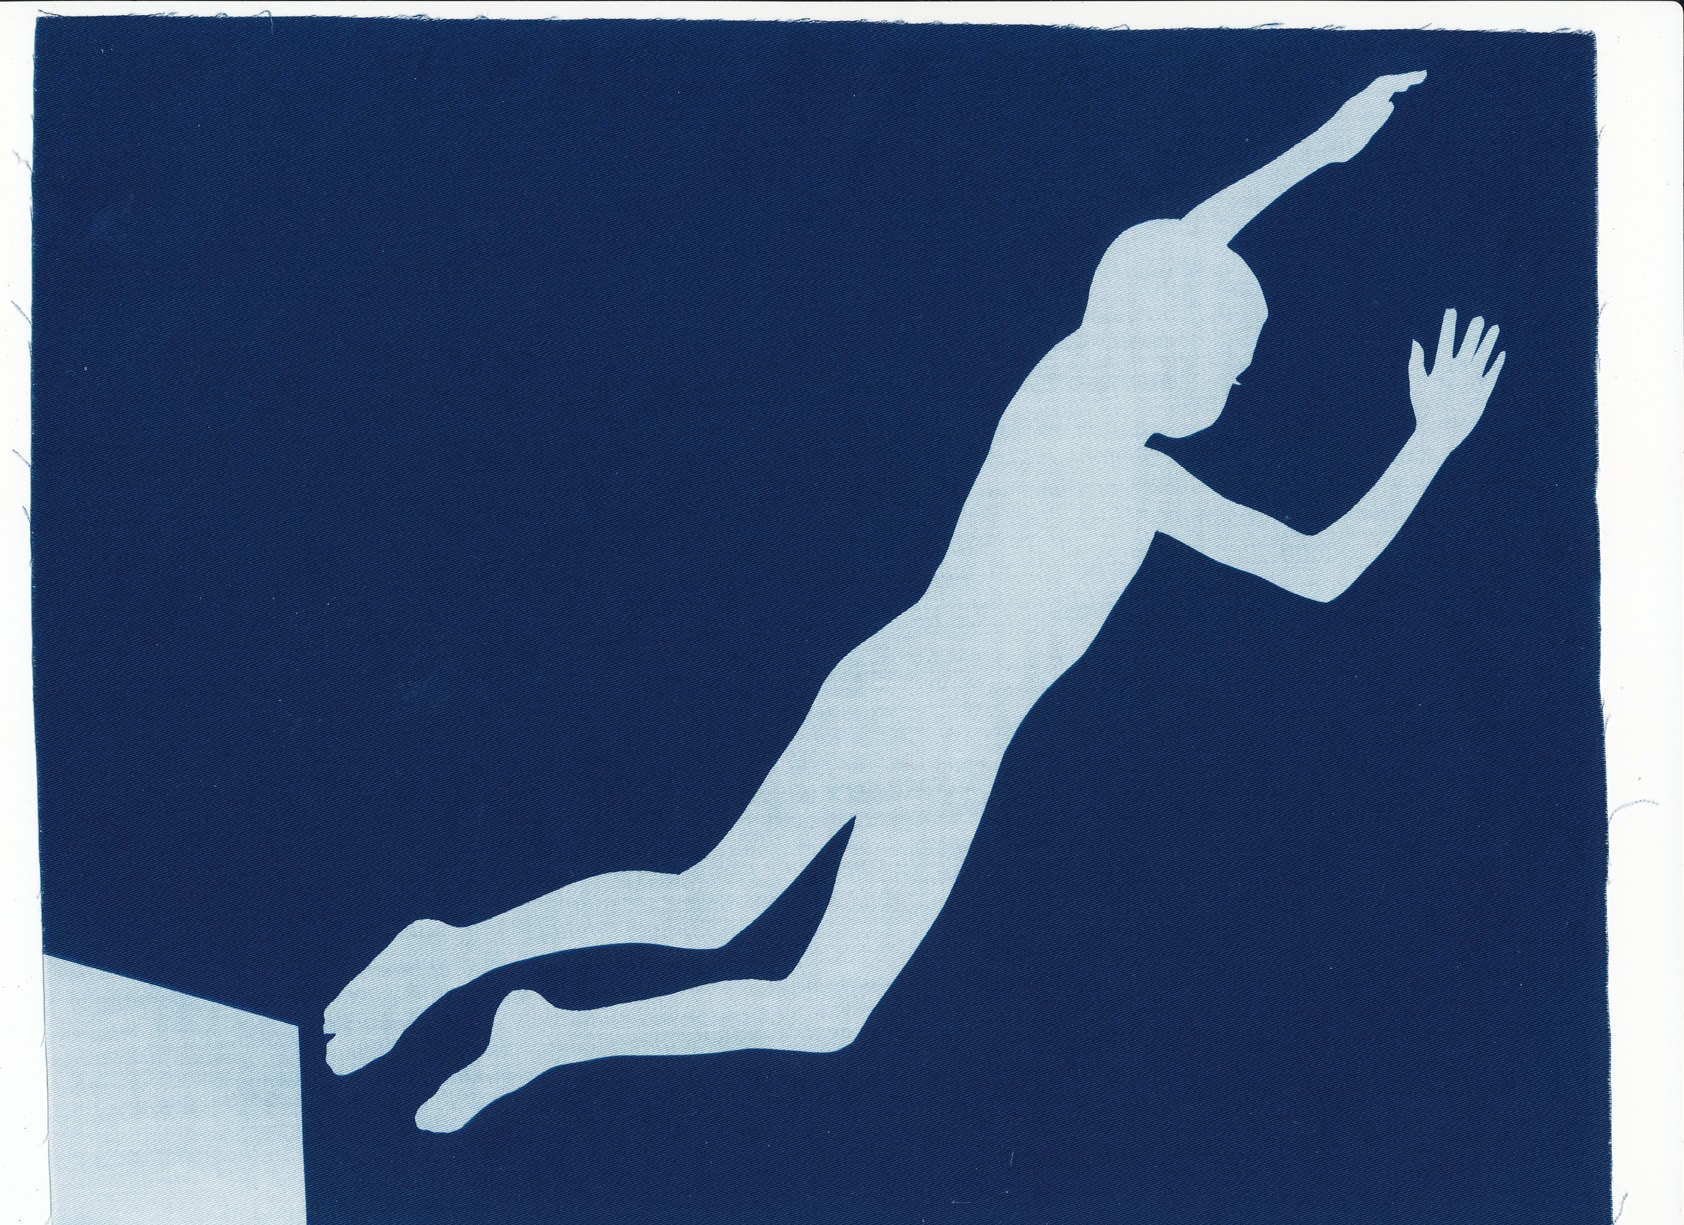 True Faith, cyanotype on cotton fabric, Mike Tedder